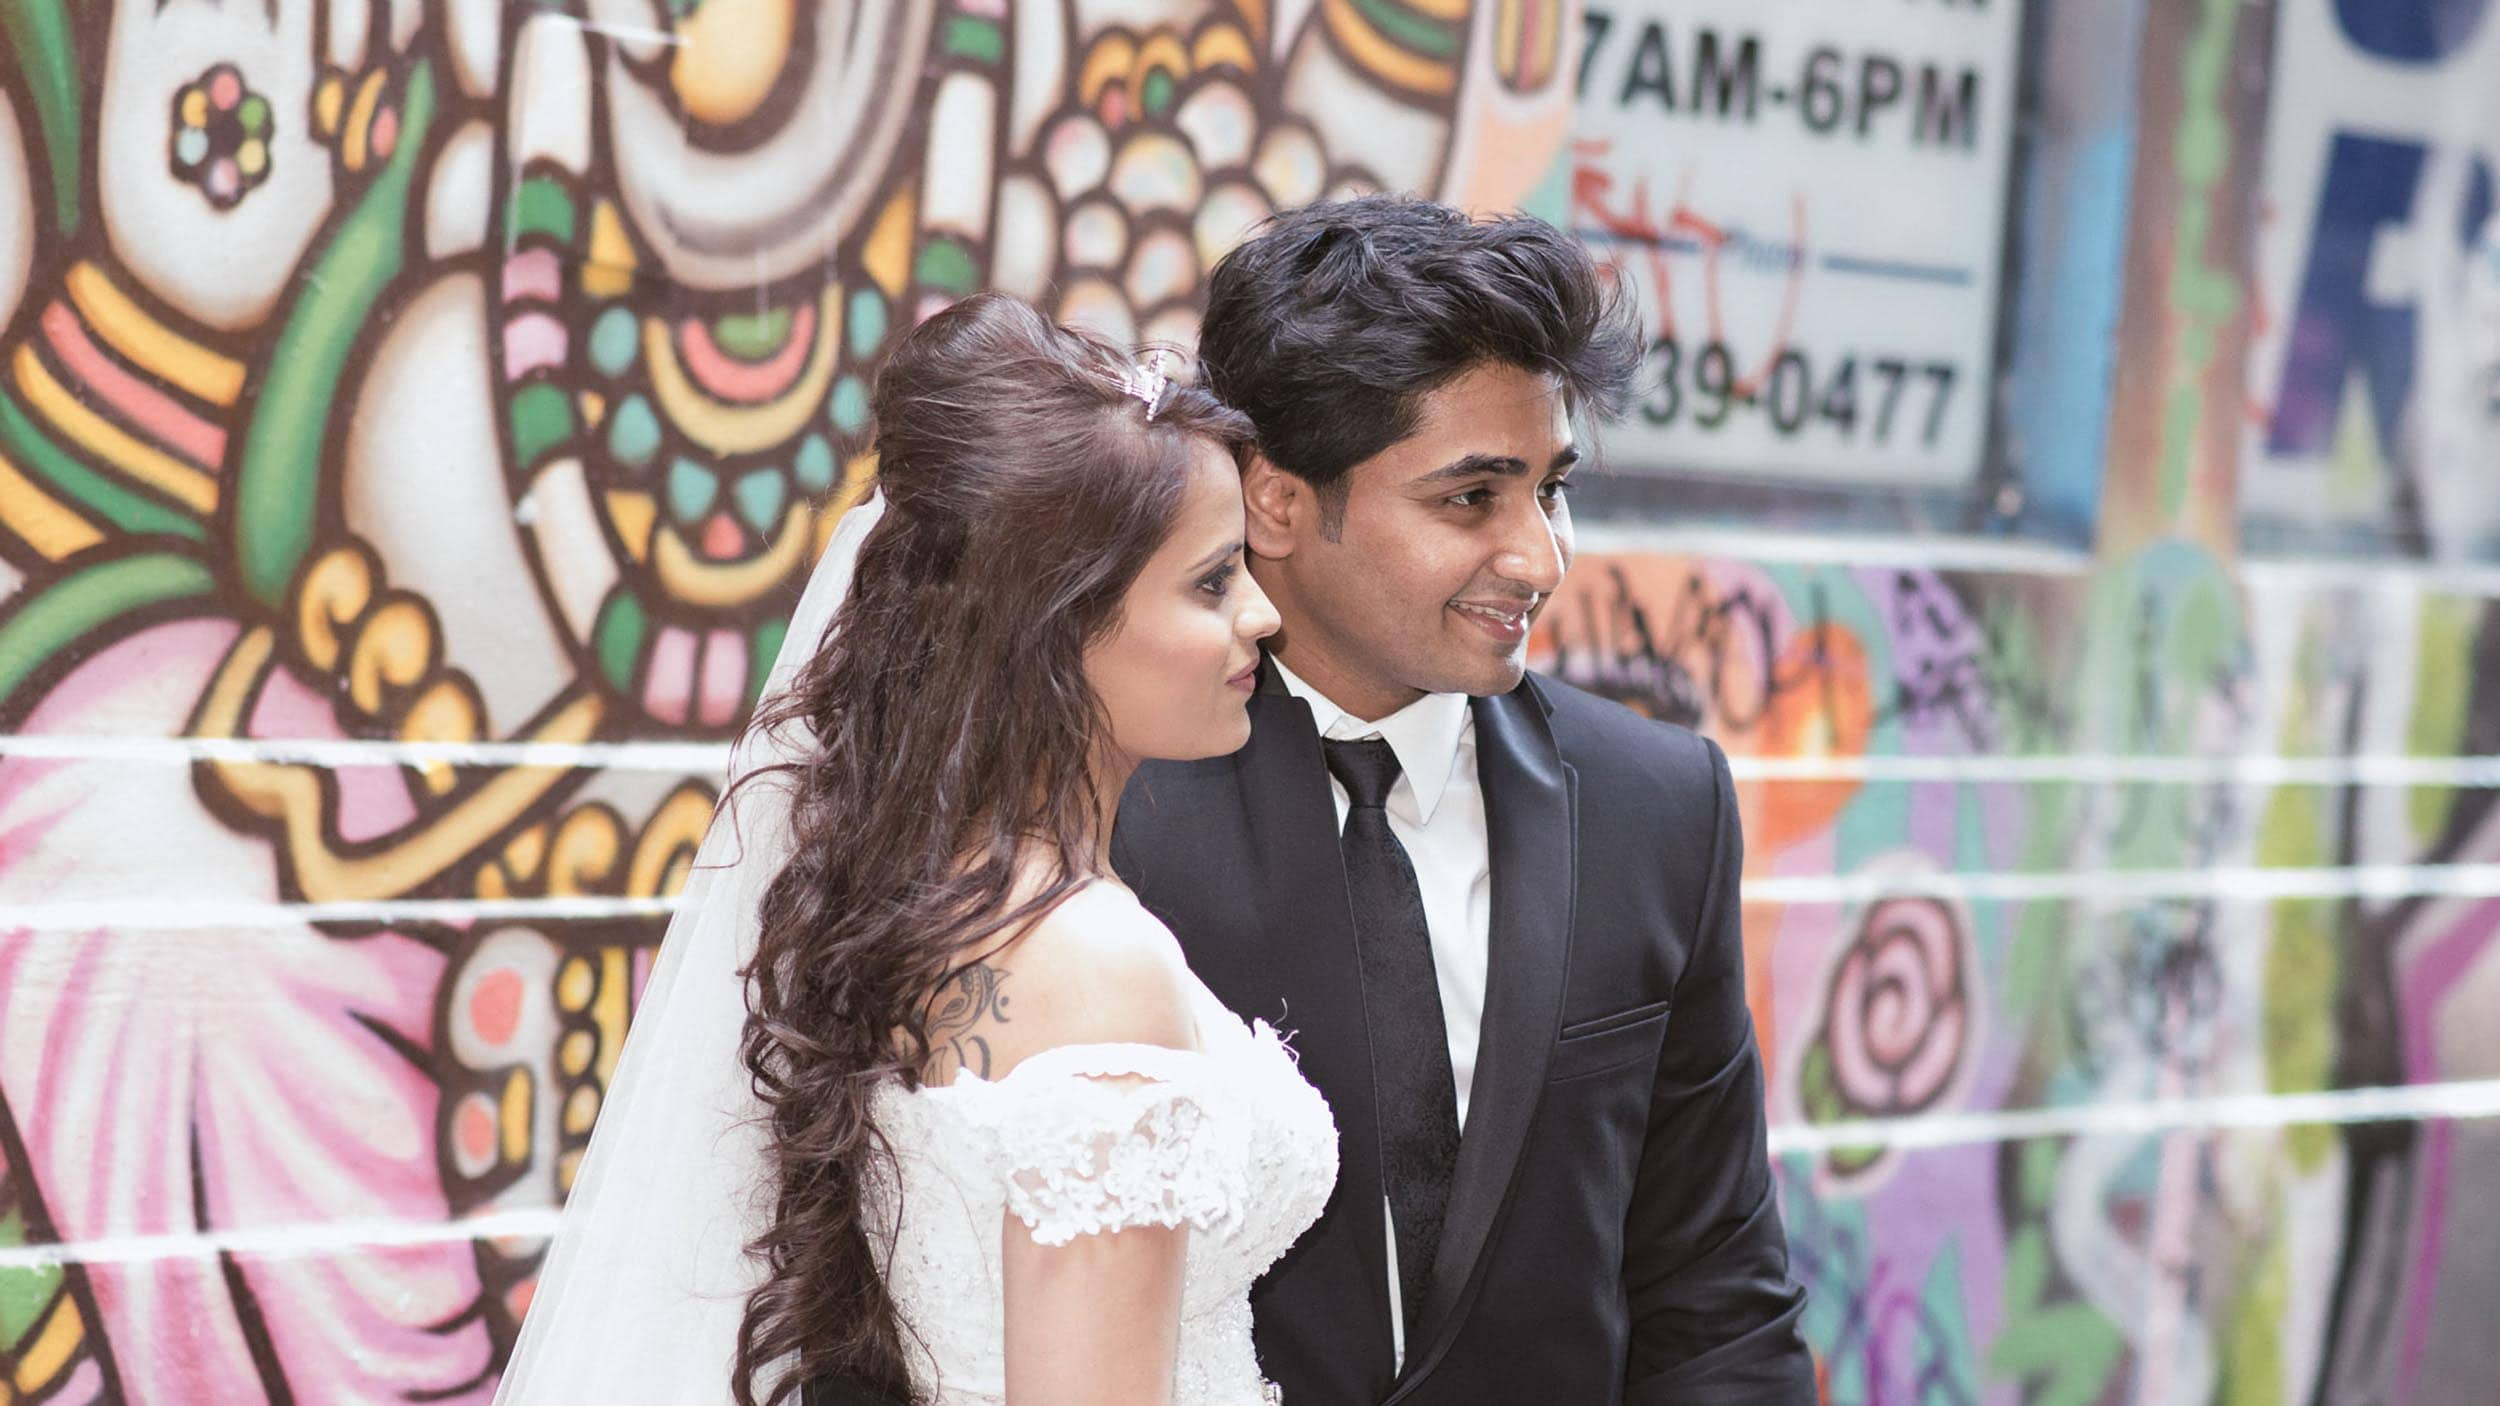 Wedding Photography Melbourne - Pause The Moment - Indian couple pose in Hosier Lane